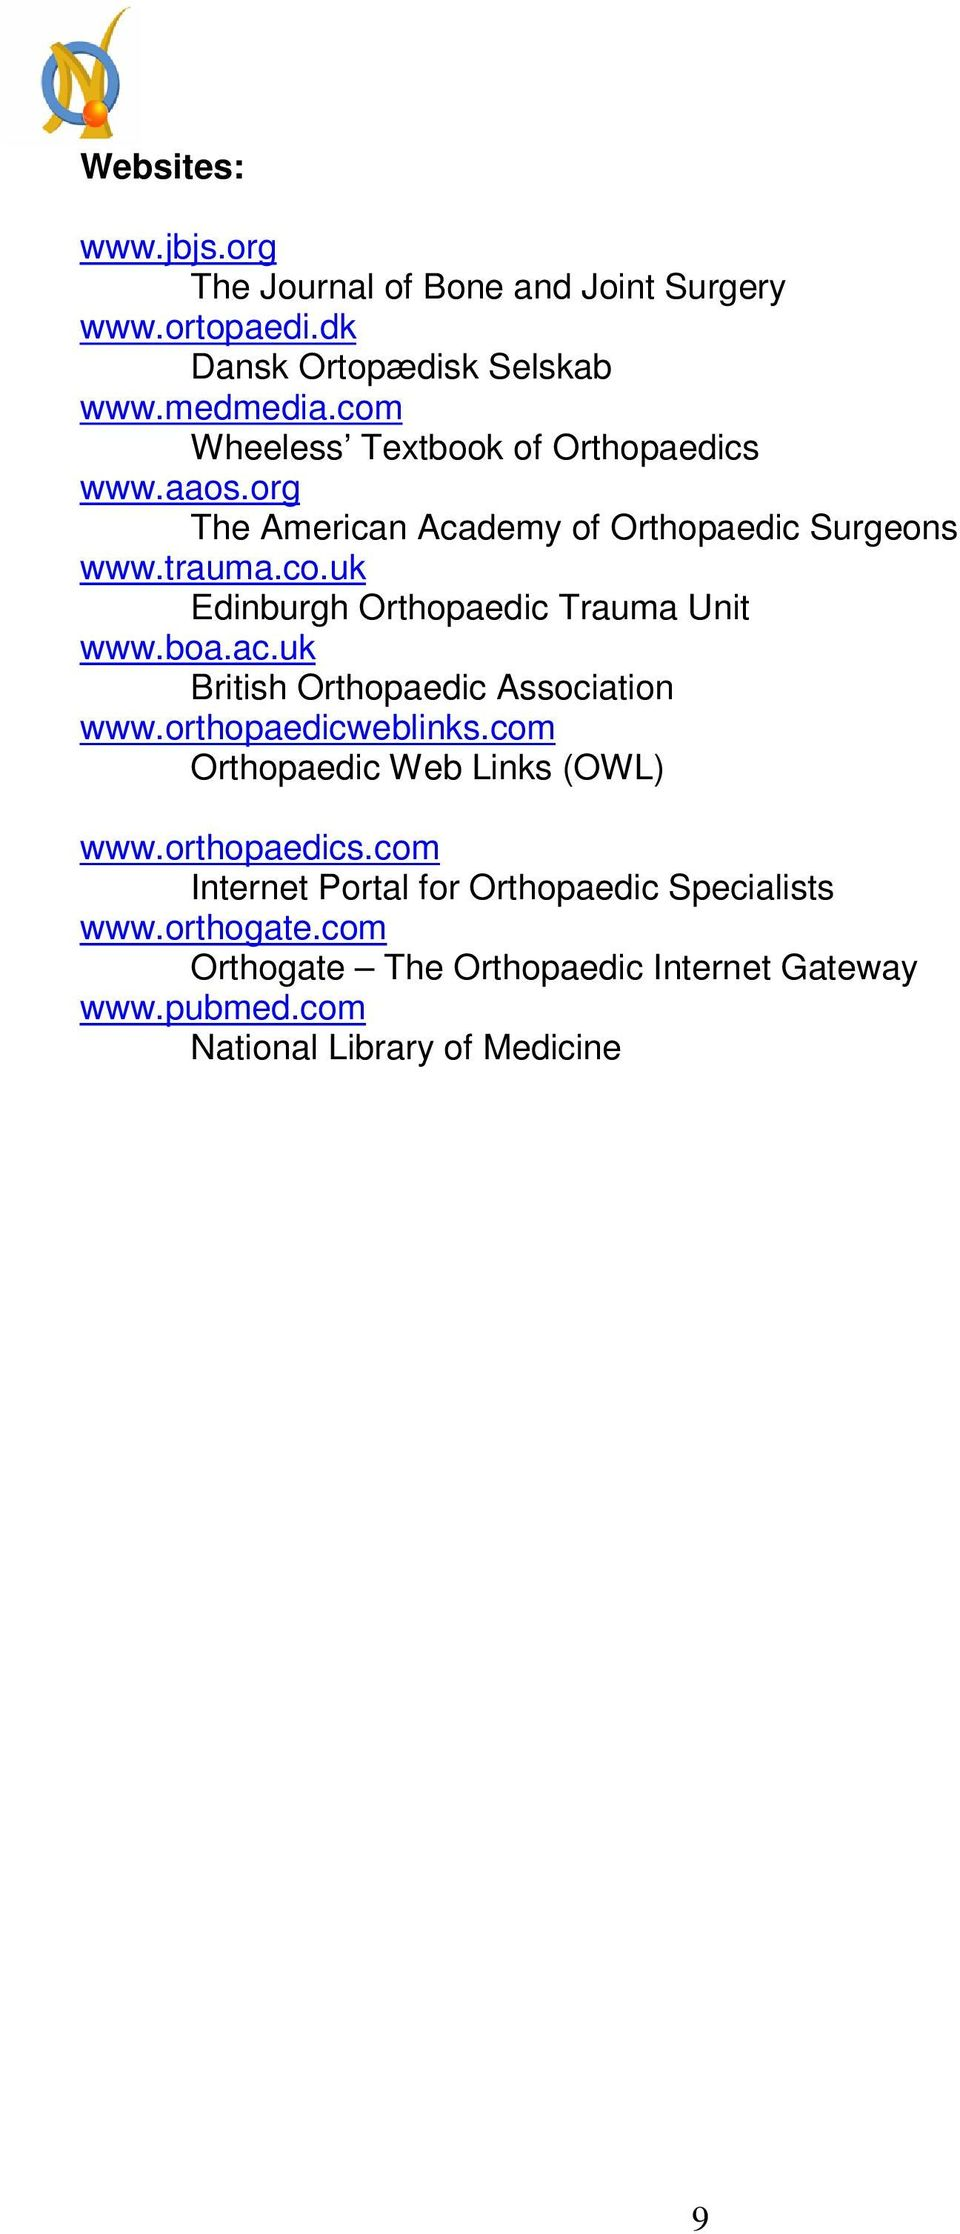 boa.ac.uk British Orthopaedic Association www.orthopaedicweblinks.com Orthopaedic Web Links (OWL) www.orthopaedics.